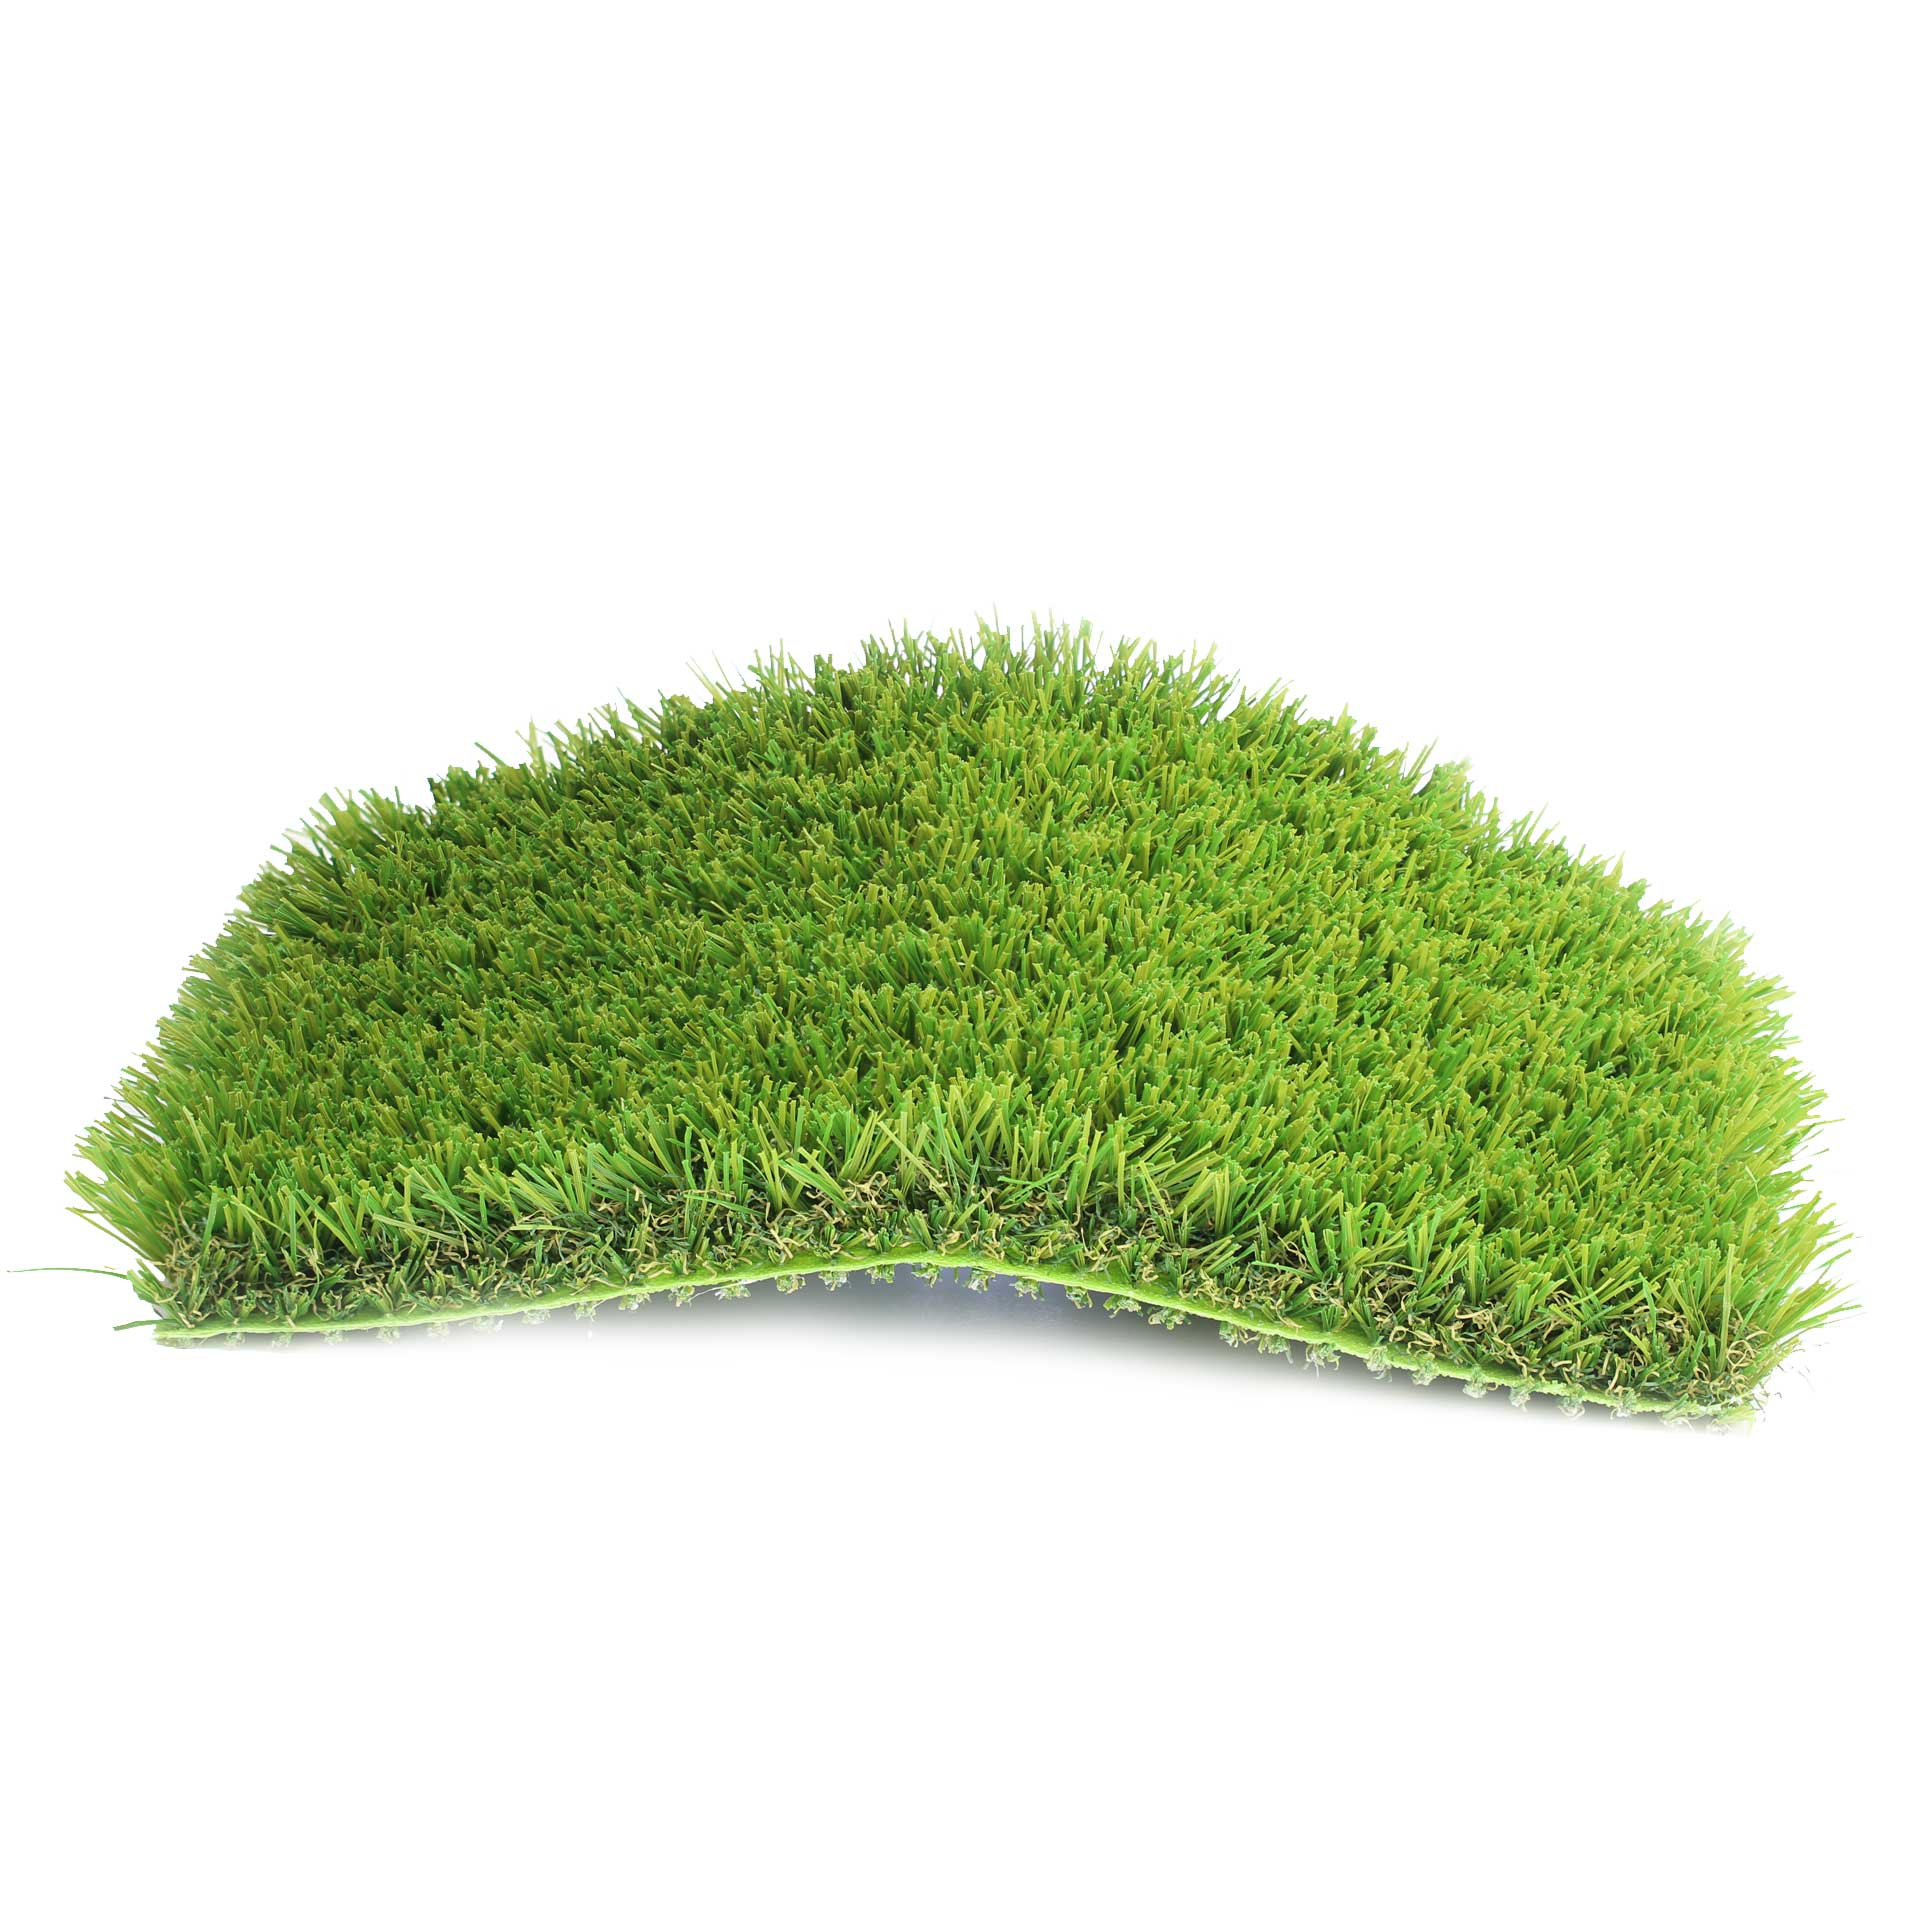 Full Recycle-60 artificial grass